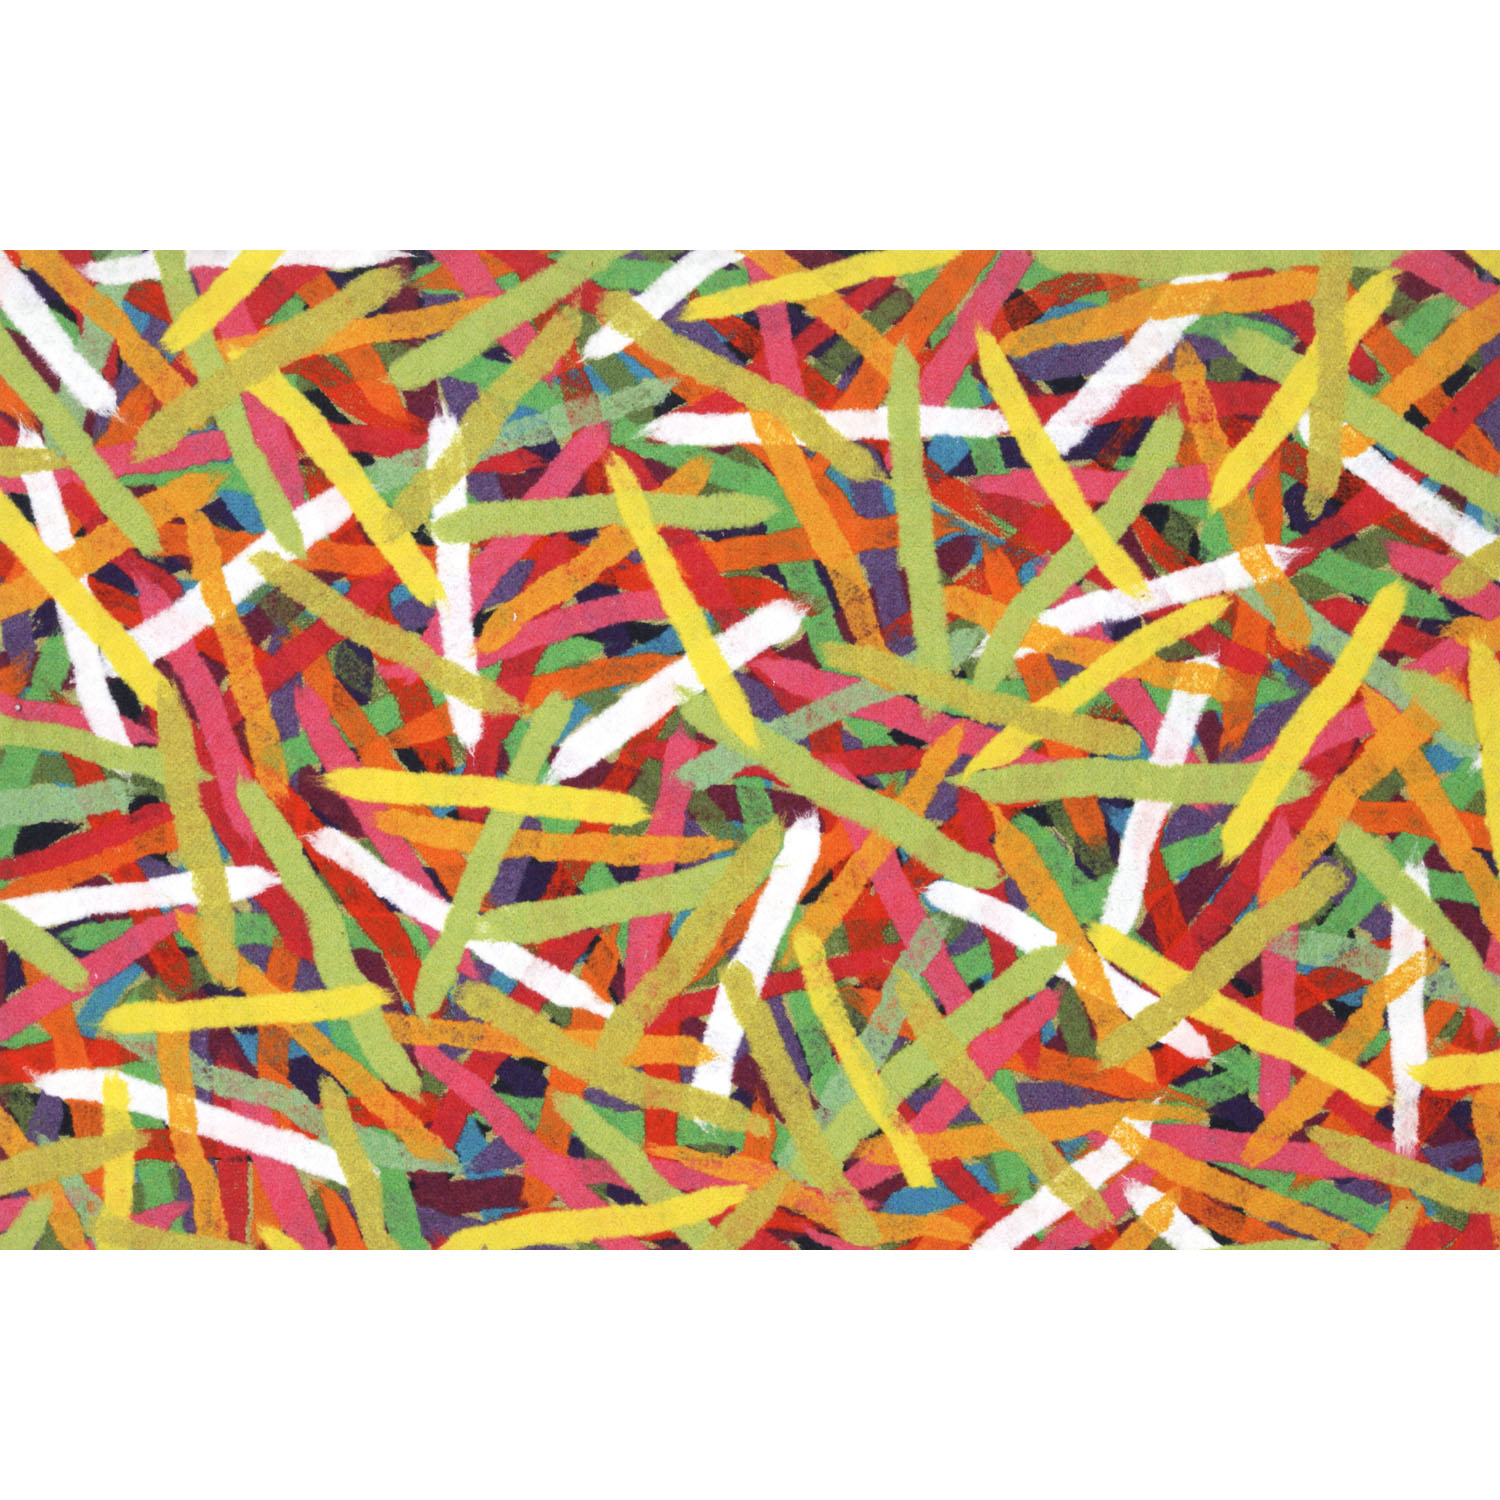 Visions III Pick Up Sticks Jewel Mat-Color:Yellow